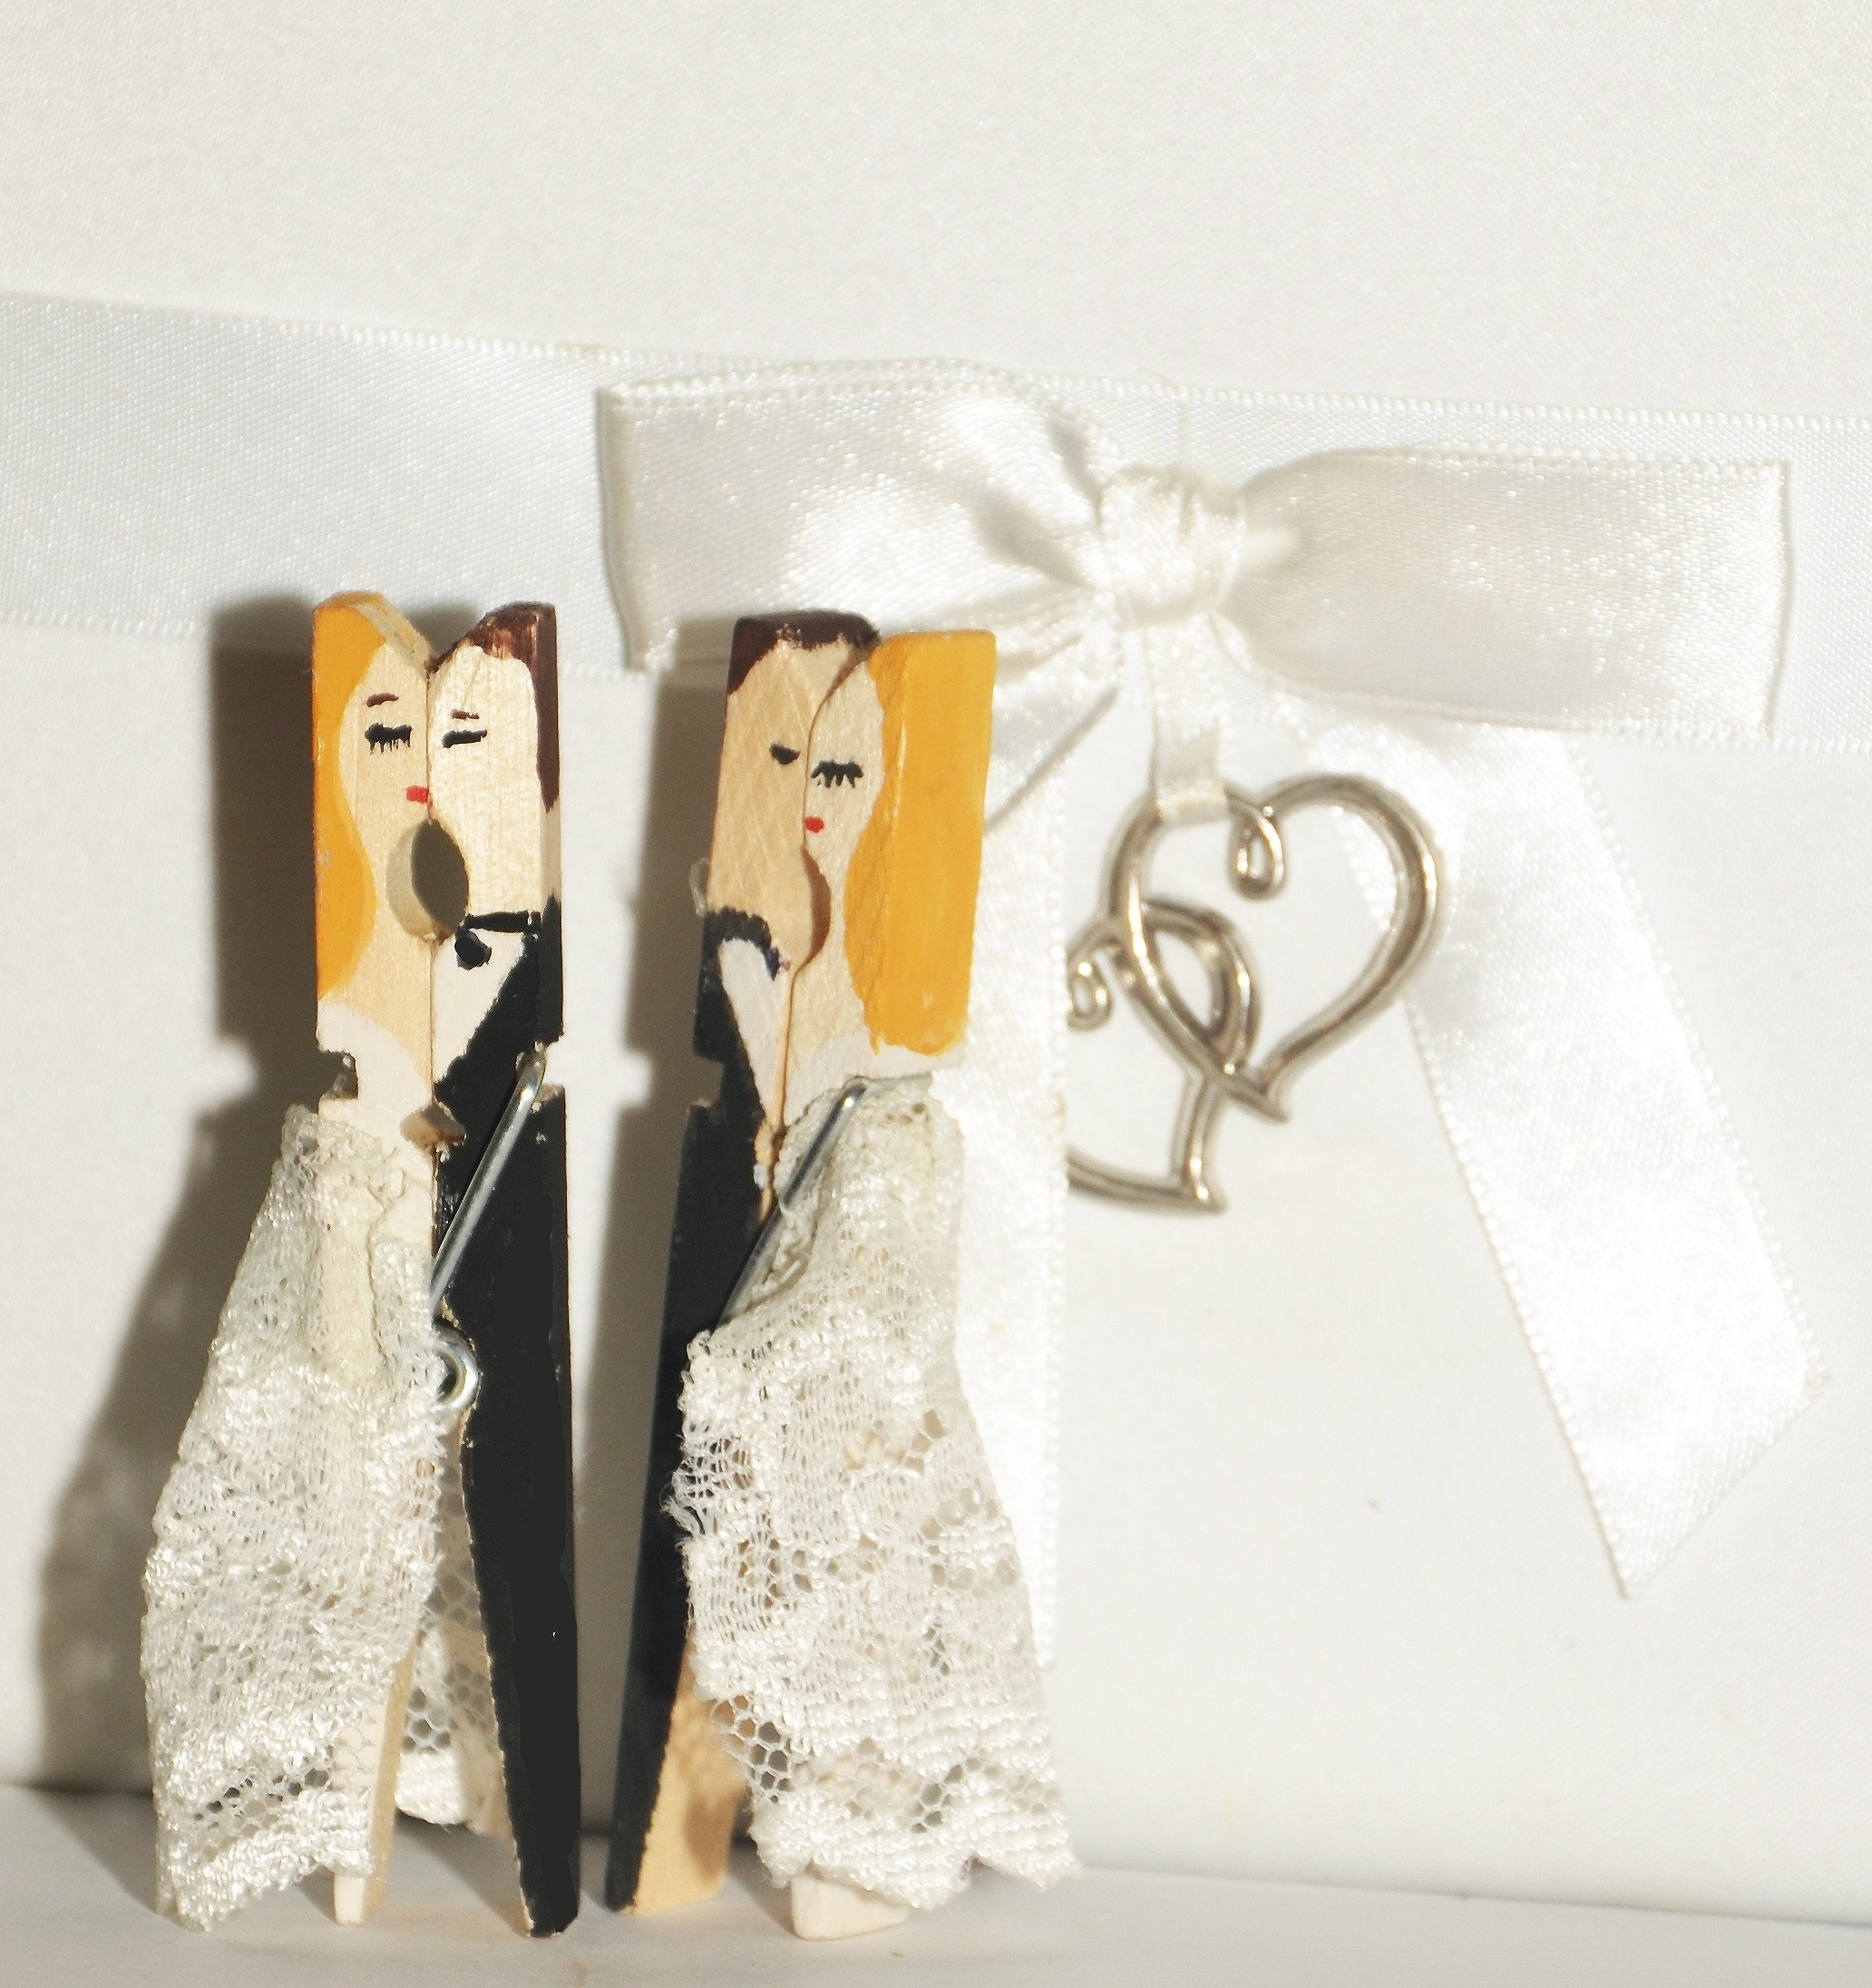 10 Fashionable Wedding Gift Ideas For Bride From Groom wedding gift ideas for bride and groom fine special gifts handwork 1